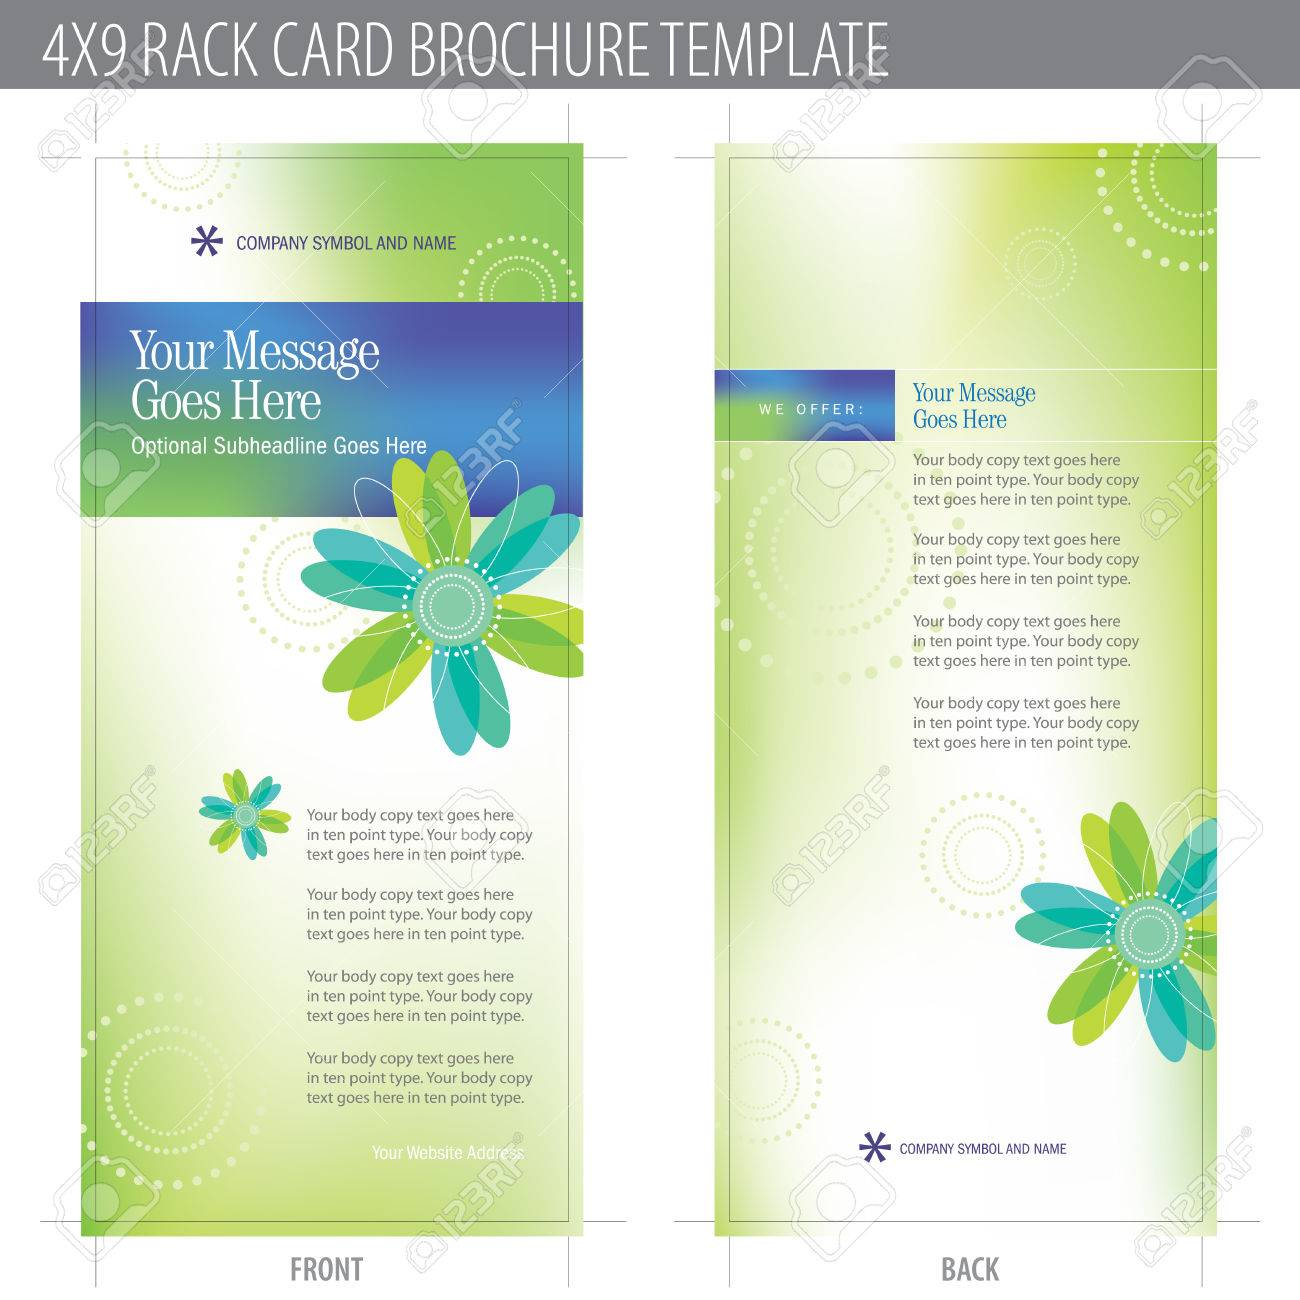 4x9 rack card brochure template includes cropmarks bleeds 4x9 rack card brochure template includes cropmarks bleeds and keyline elements in